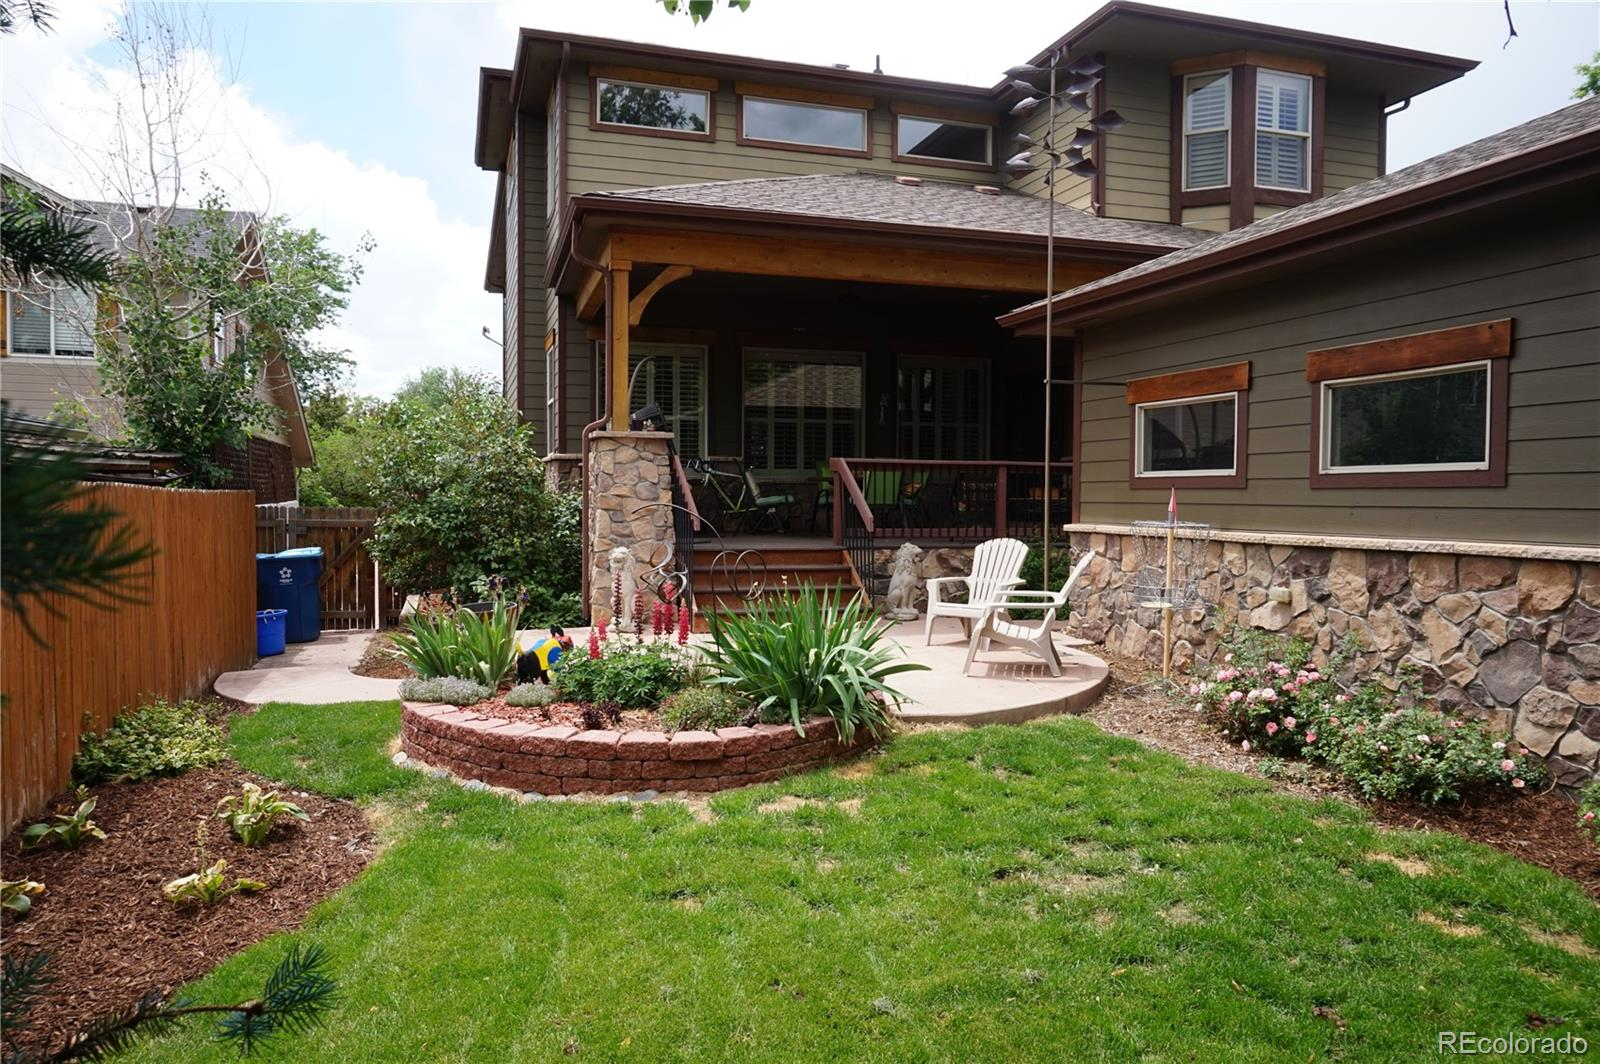 MLS# 8433922 - 30 - 3290 S Corona Street, Englewood, CO 80113